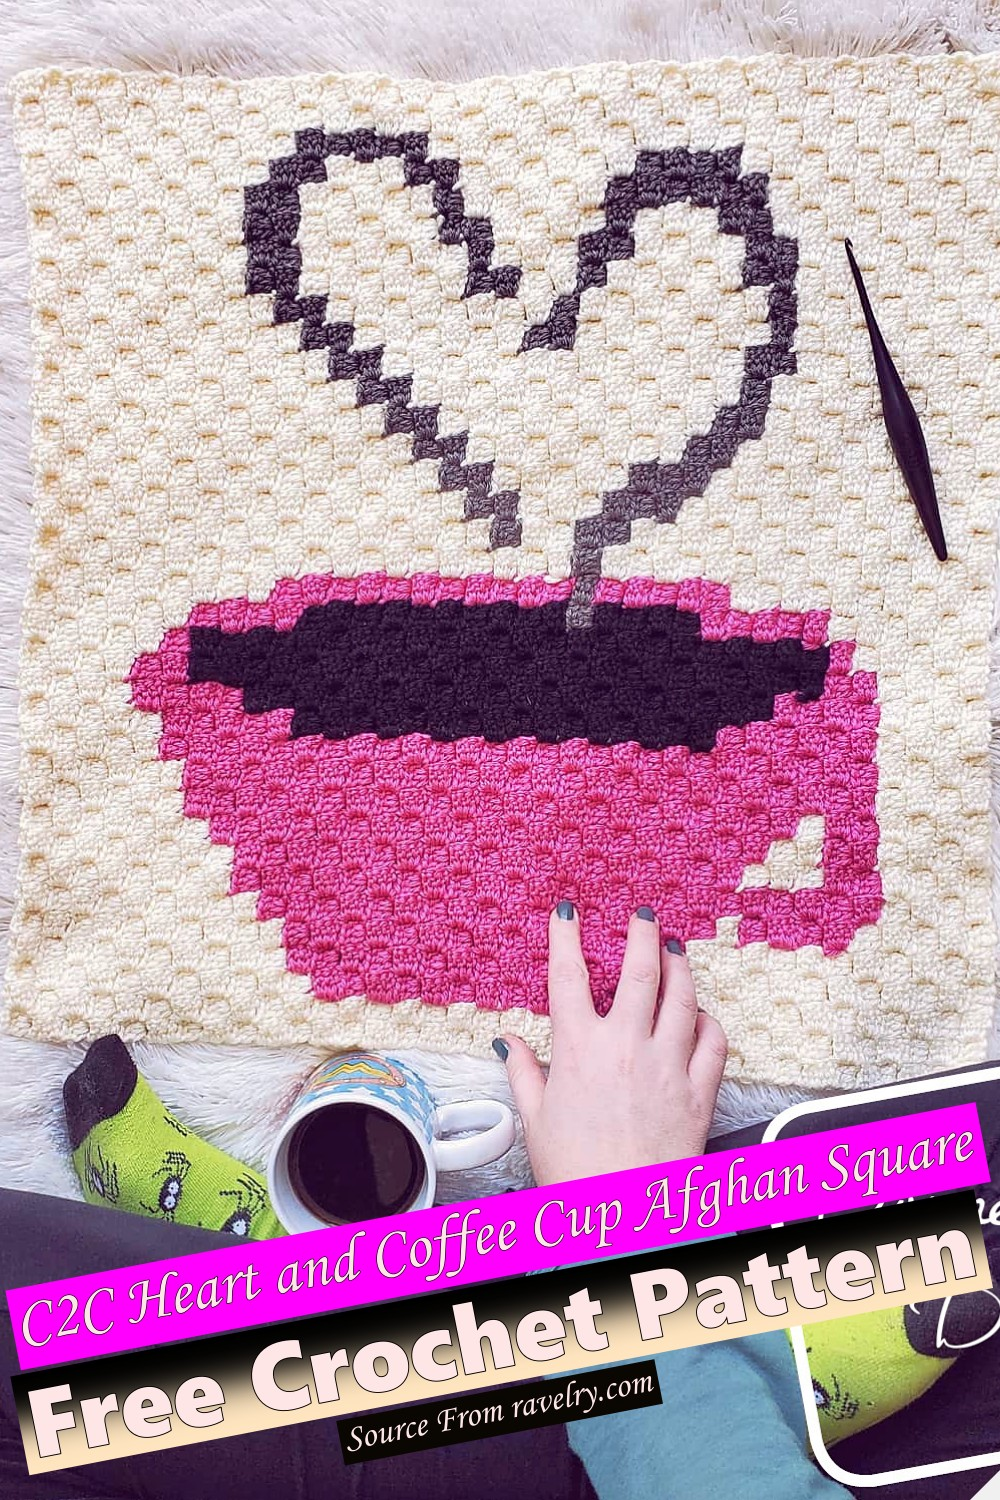 Free Crochet C2C Heart and Coffee Cup Afghan Square Pattern